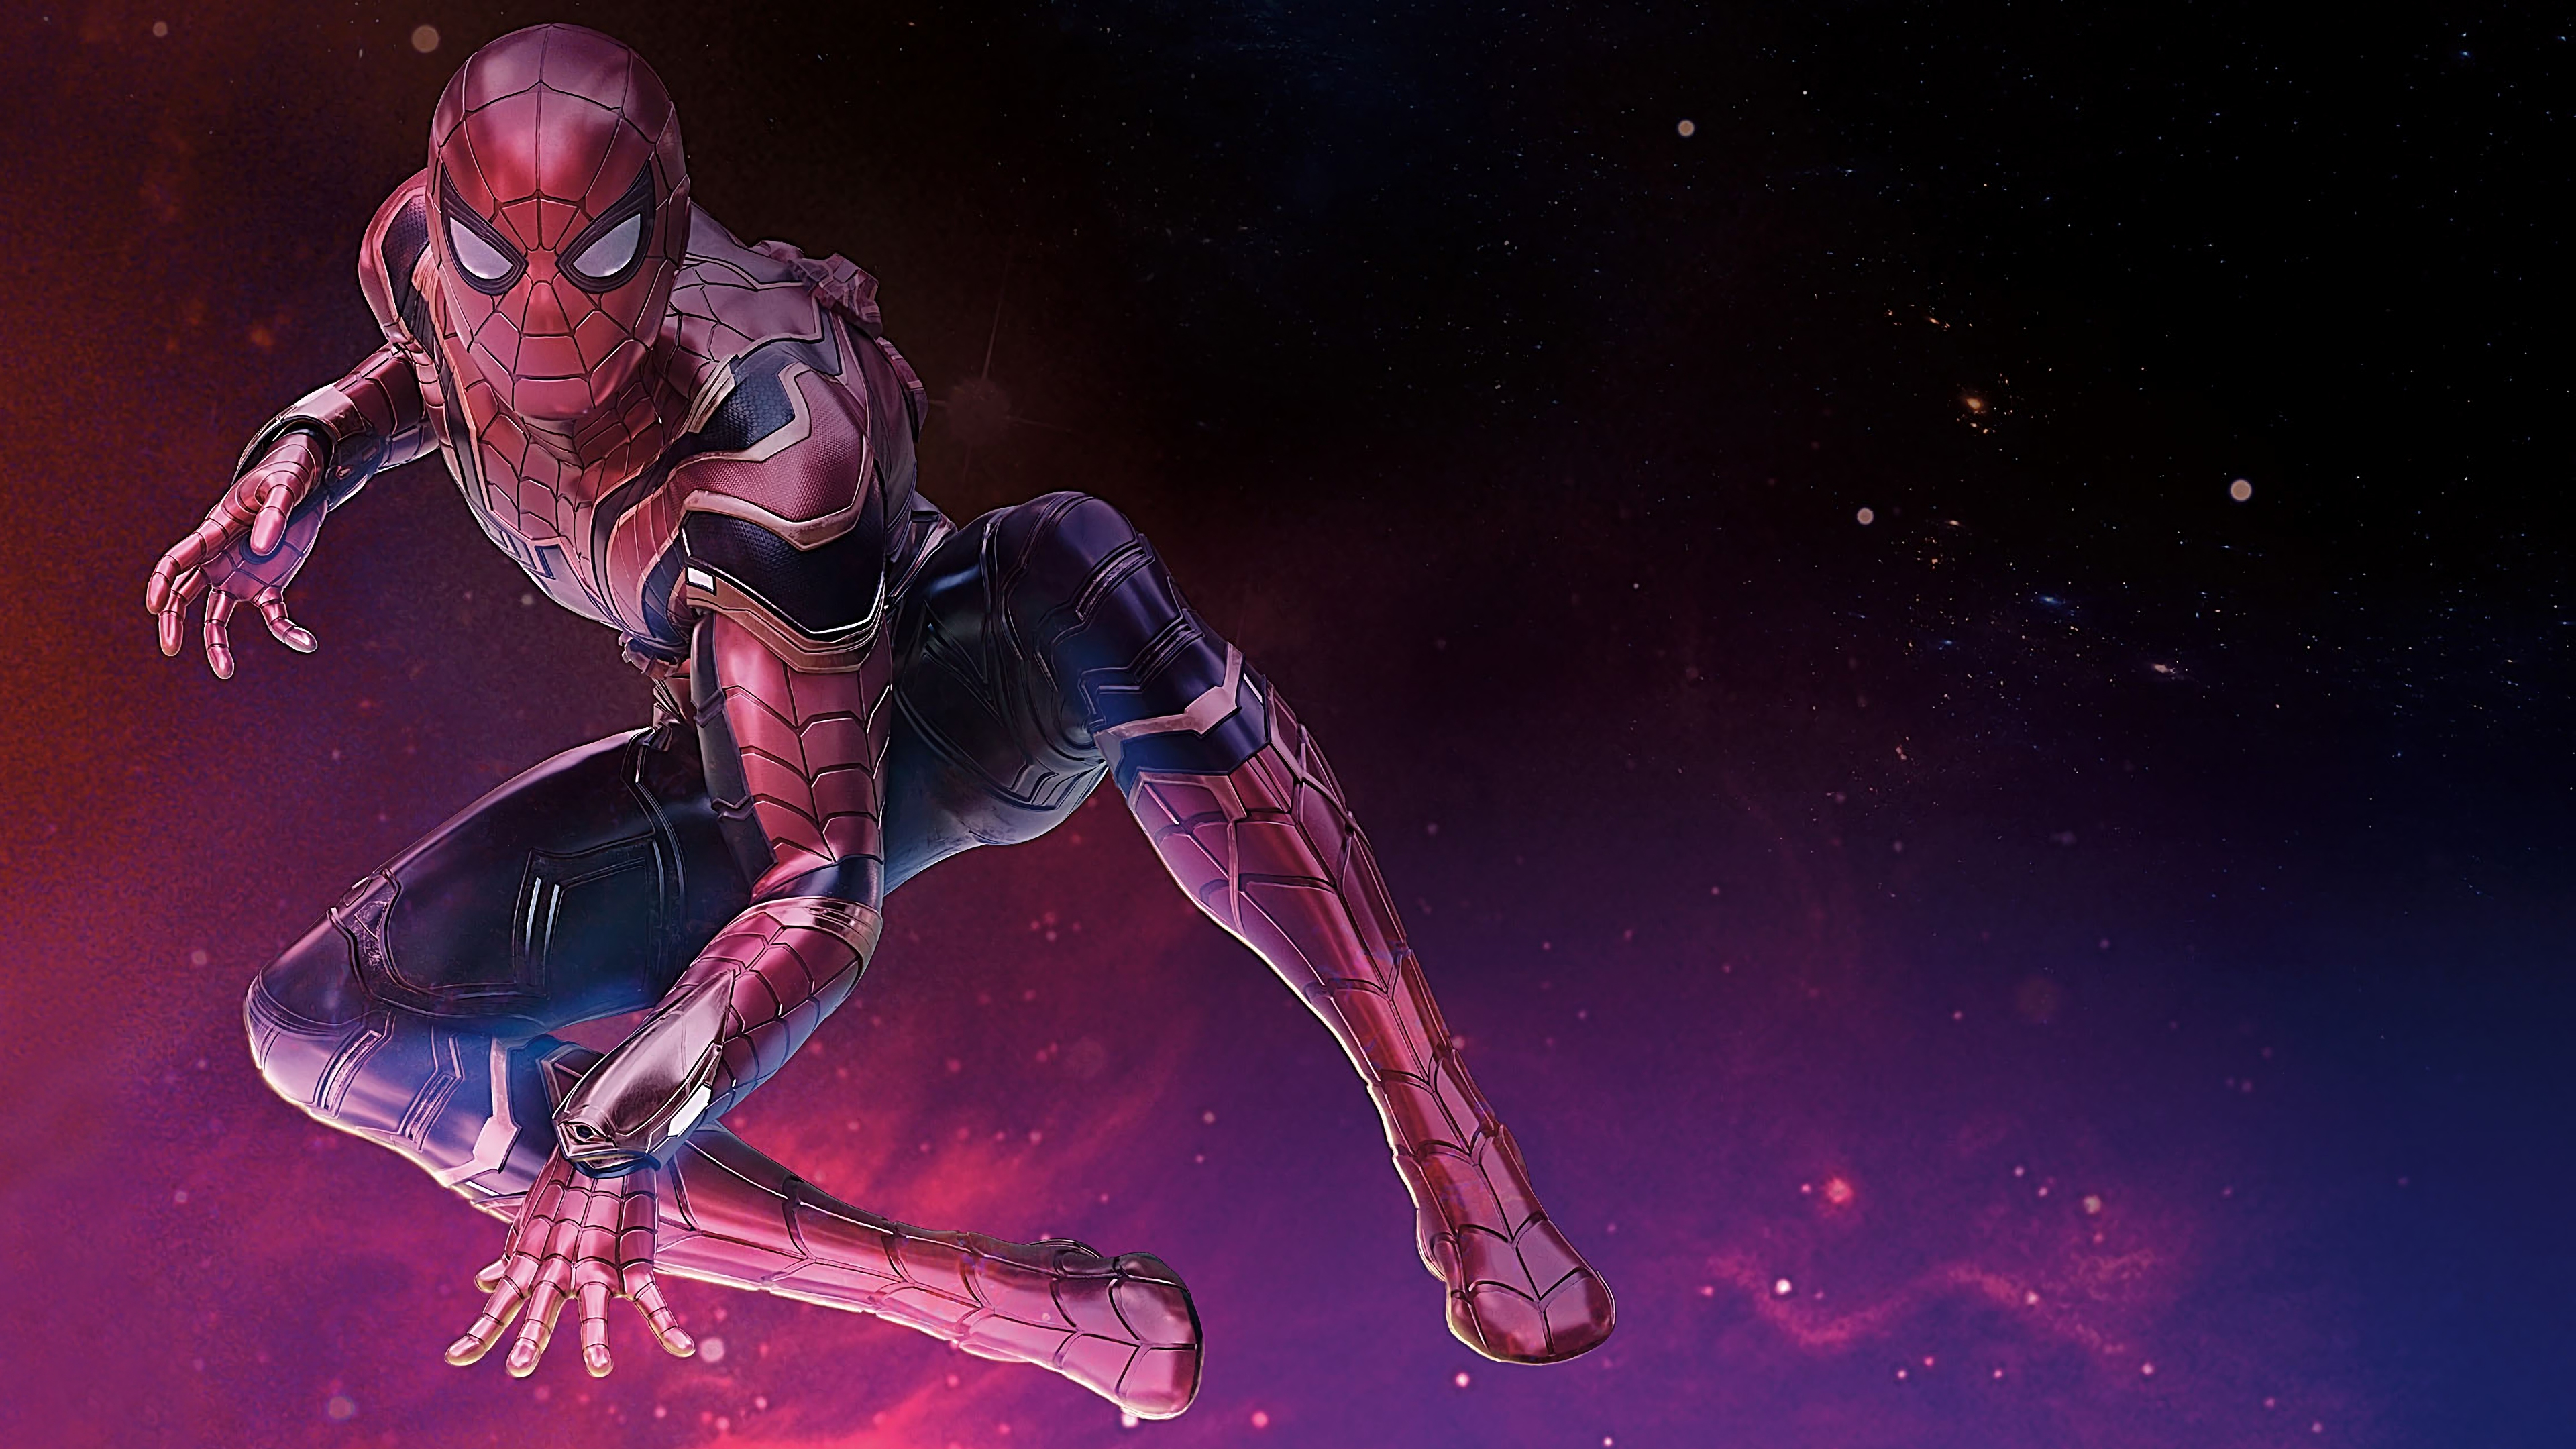 3840x2400 spiderman new suit for avengers infinity war 4k hd 4k wallpapers images backgrounds - Infinity war hd download ...